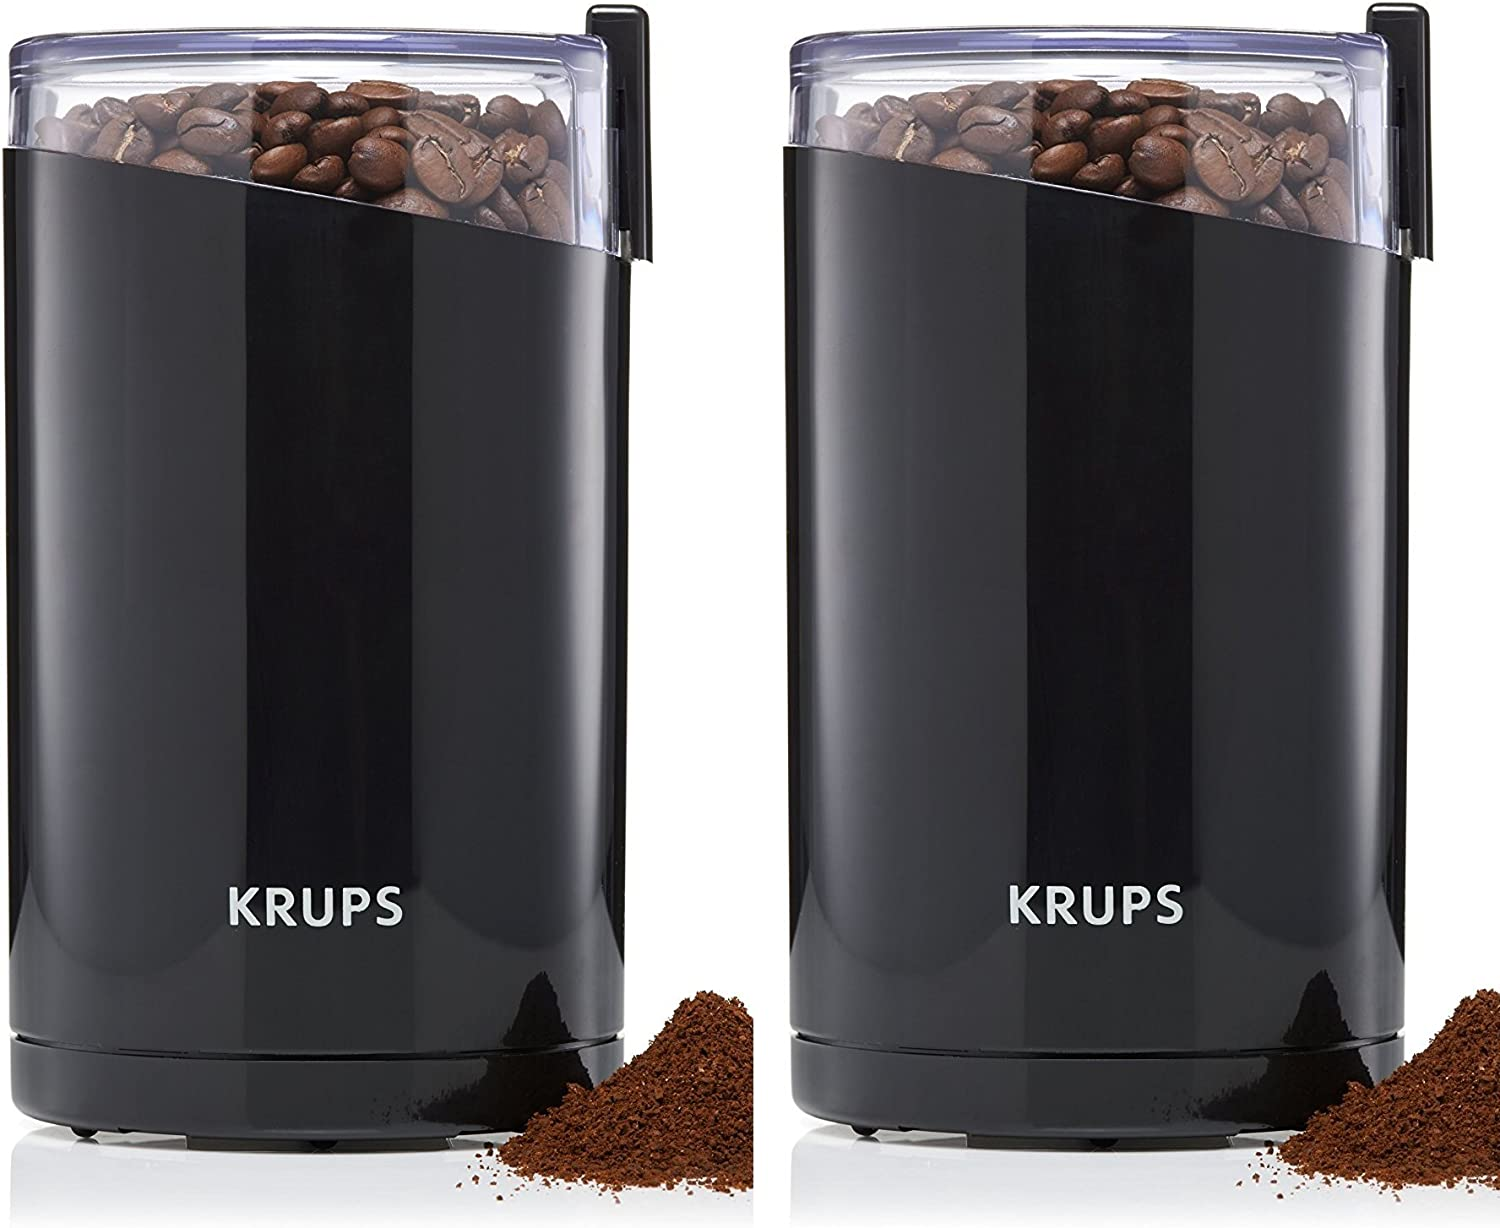 Amazon Com Krups F203 Electric Spice And Coffee Jqdazc Grinder With Stainless Steel Blades 3 Ounce Black Blade Grinder Pack Of 2 Home Kitchen